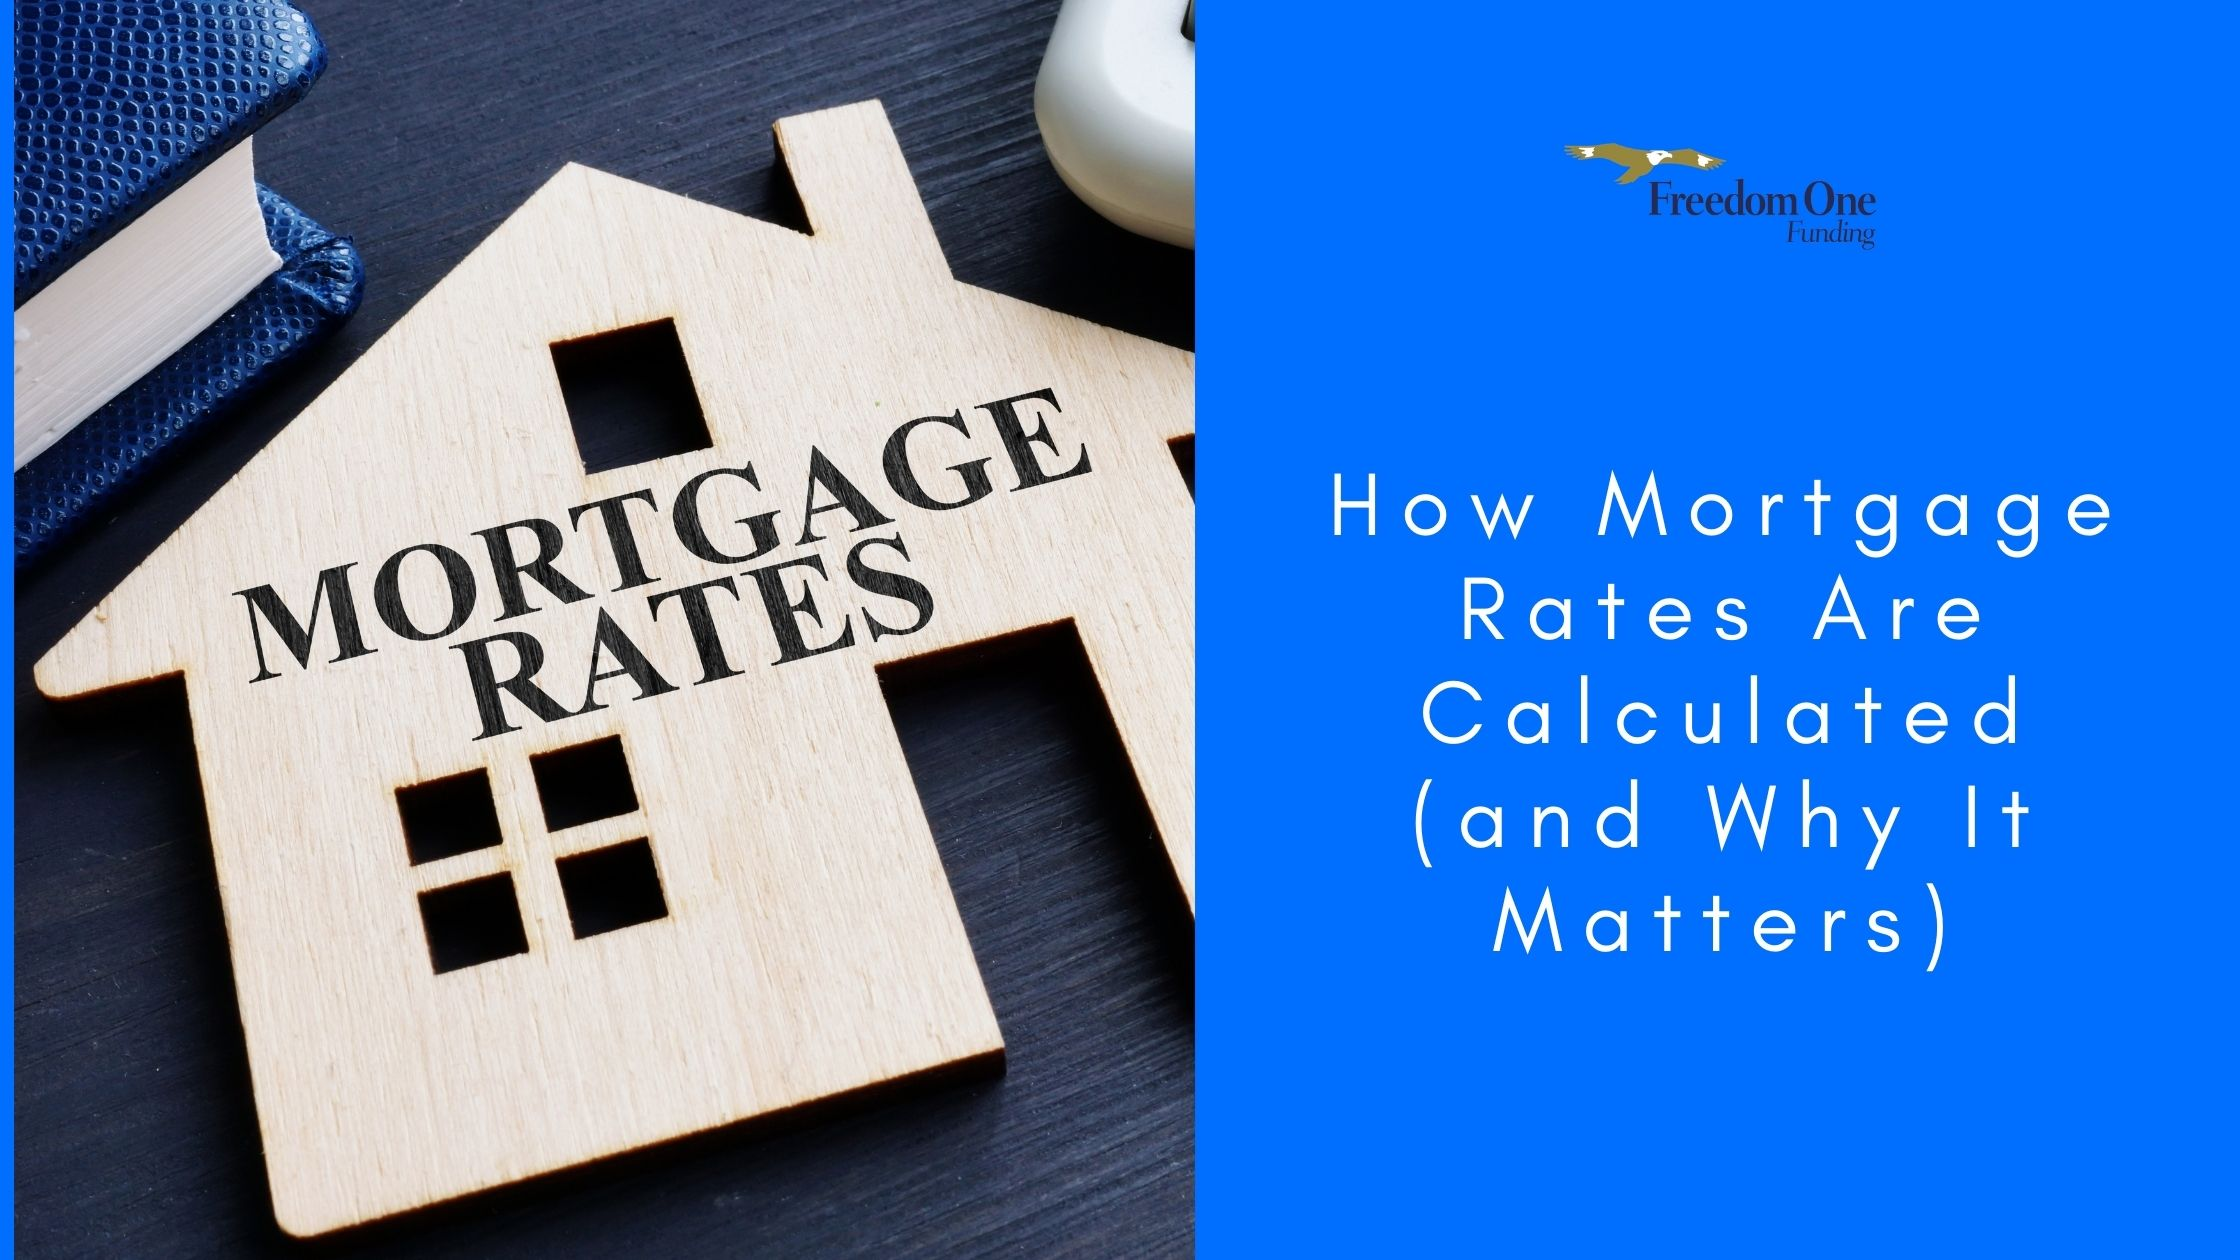 How Mortgage Rates Are Calculated